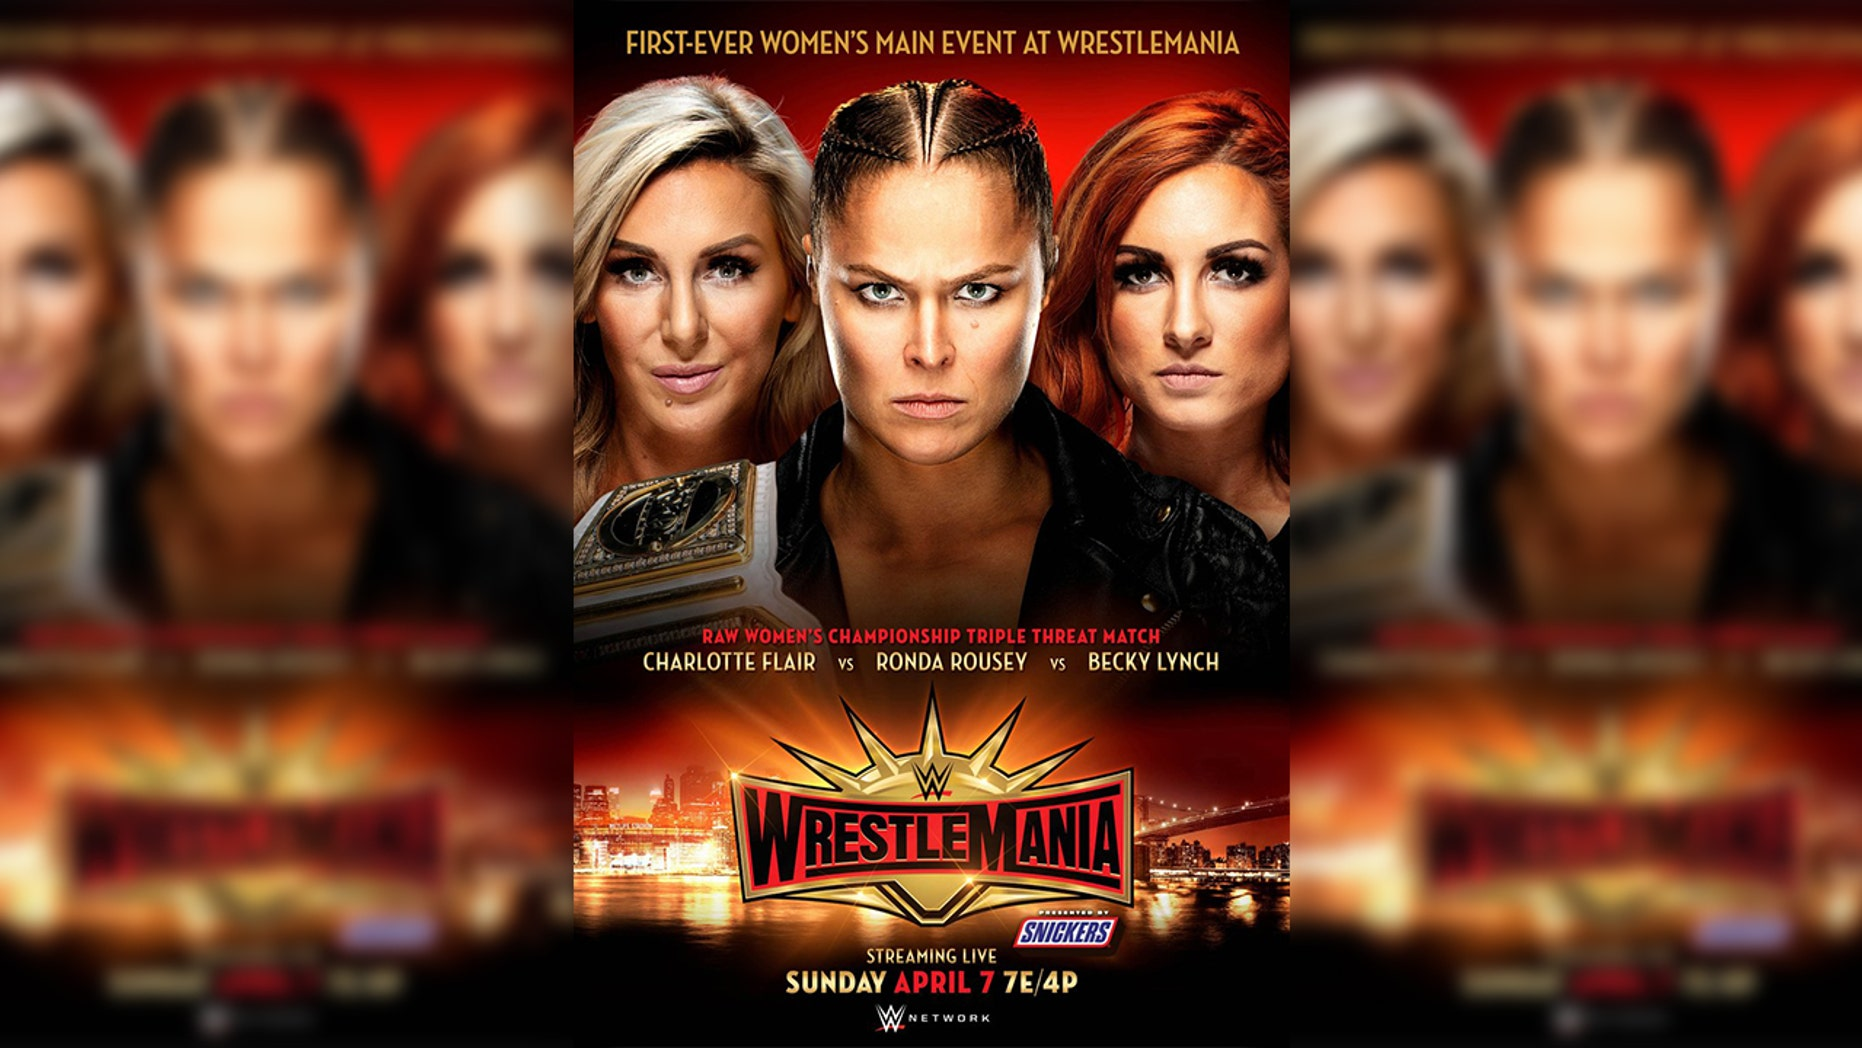 WWE Officially Announces First-Ever Women's Main Event for WrestleMania 35